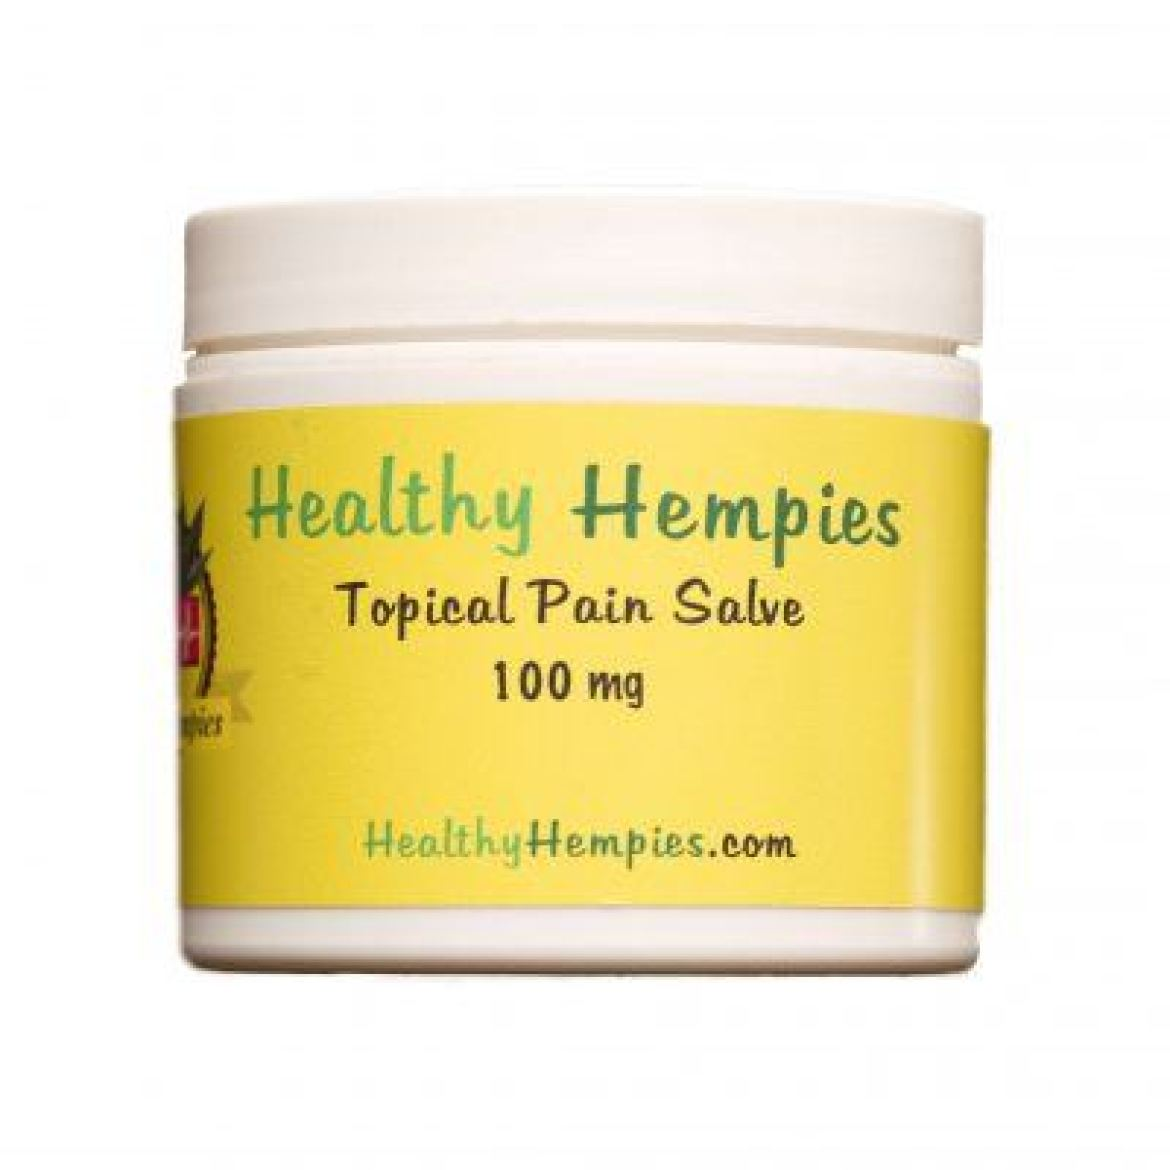 Topical Pain salve 100 mg